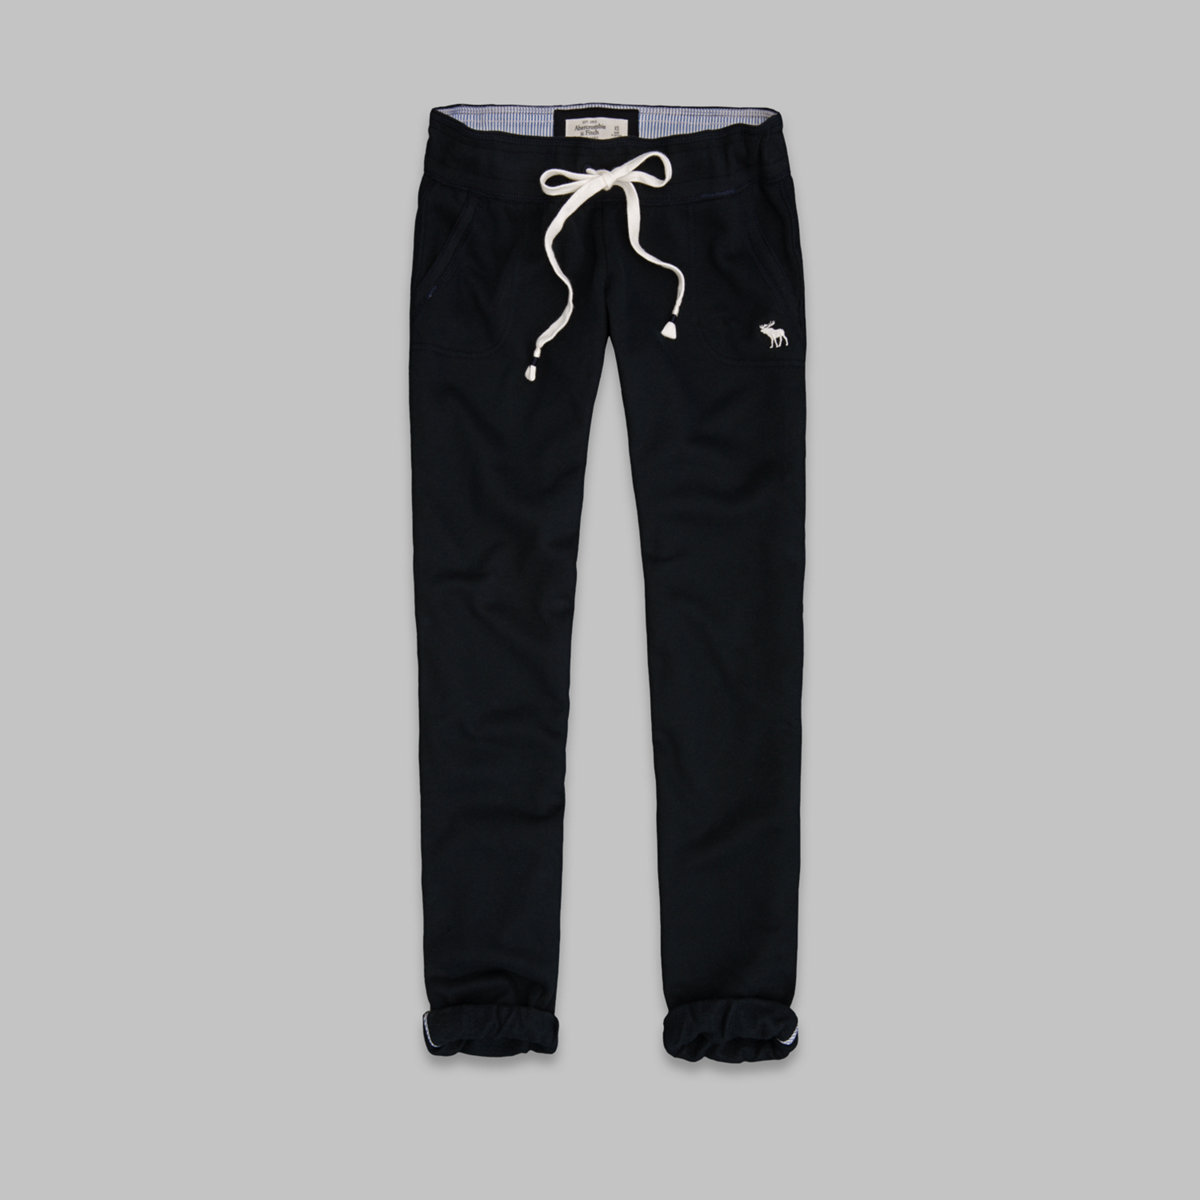 A&F Heritage Banded Sweatpants